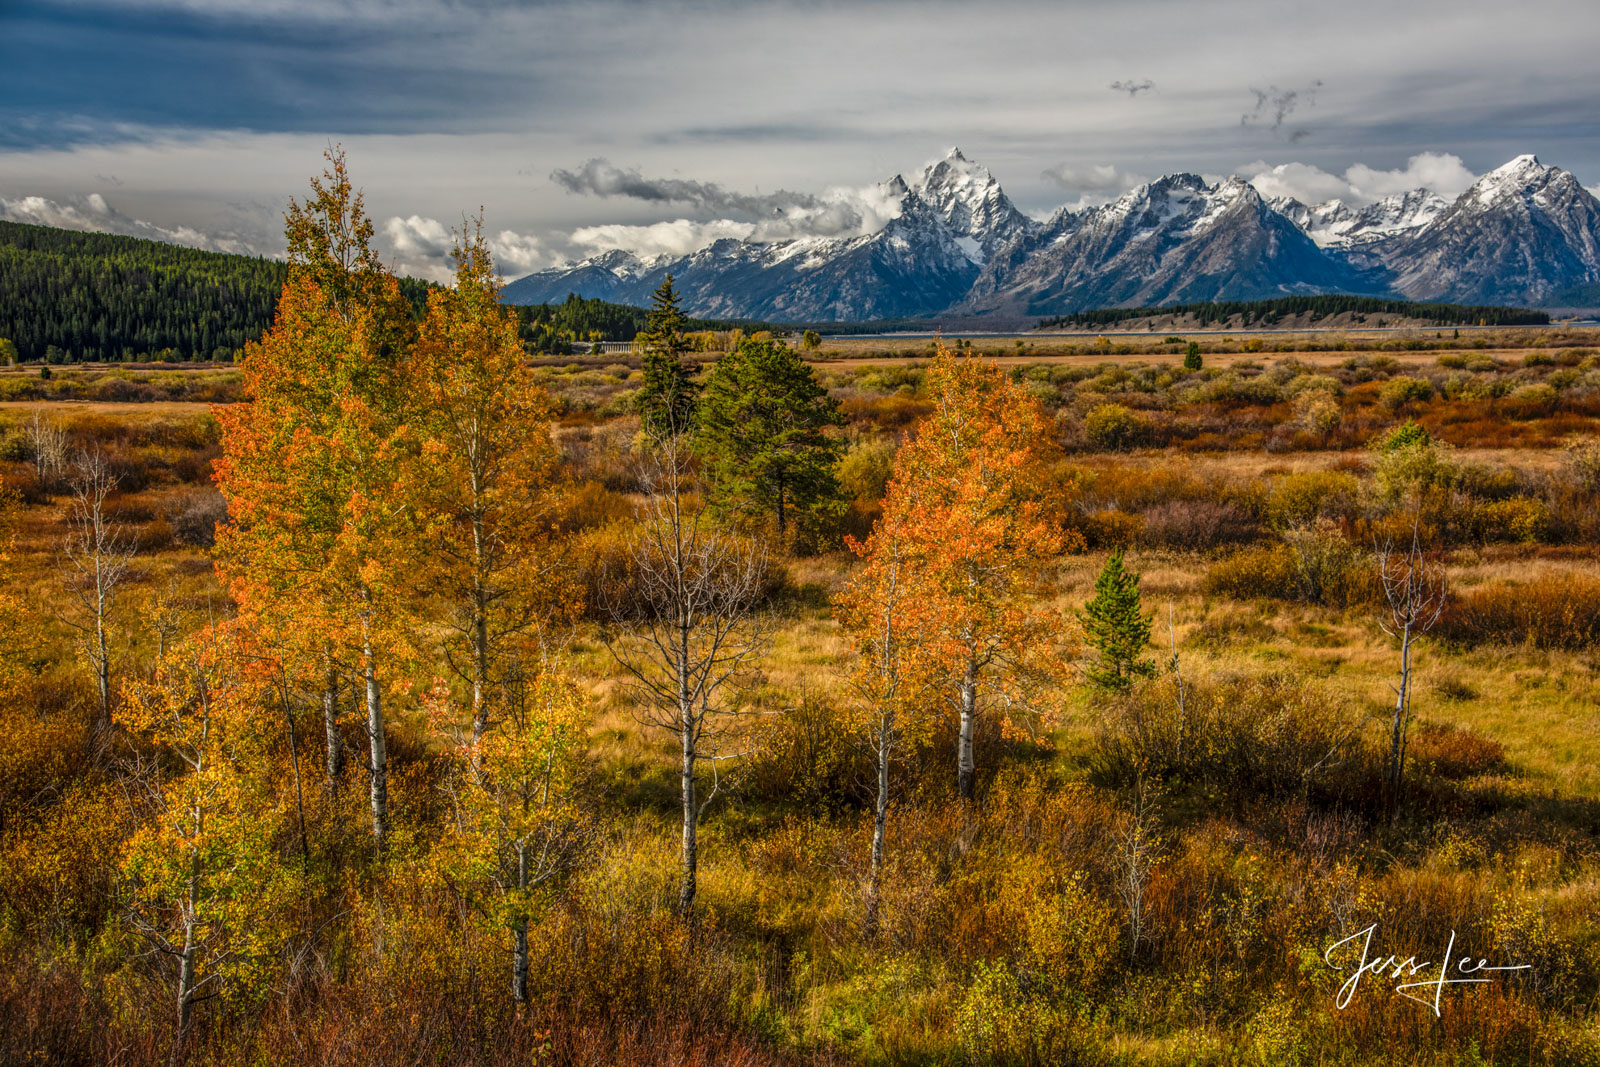 Fine Art Limited Edition of 200 Exclusive high-resolution Museum Quality Photography Prints of Autumn in the Tetons. To see more...